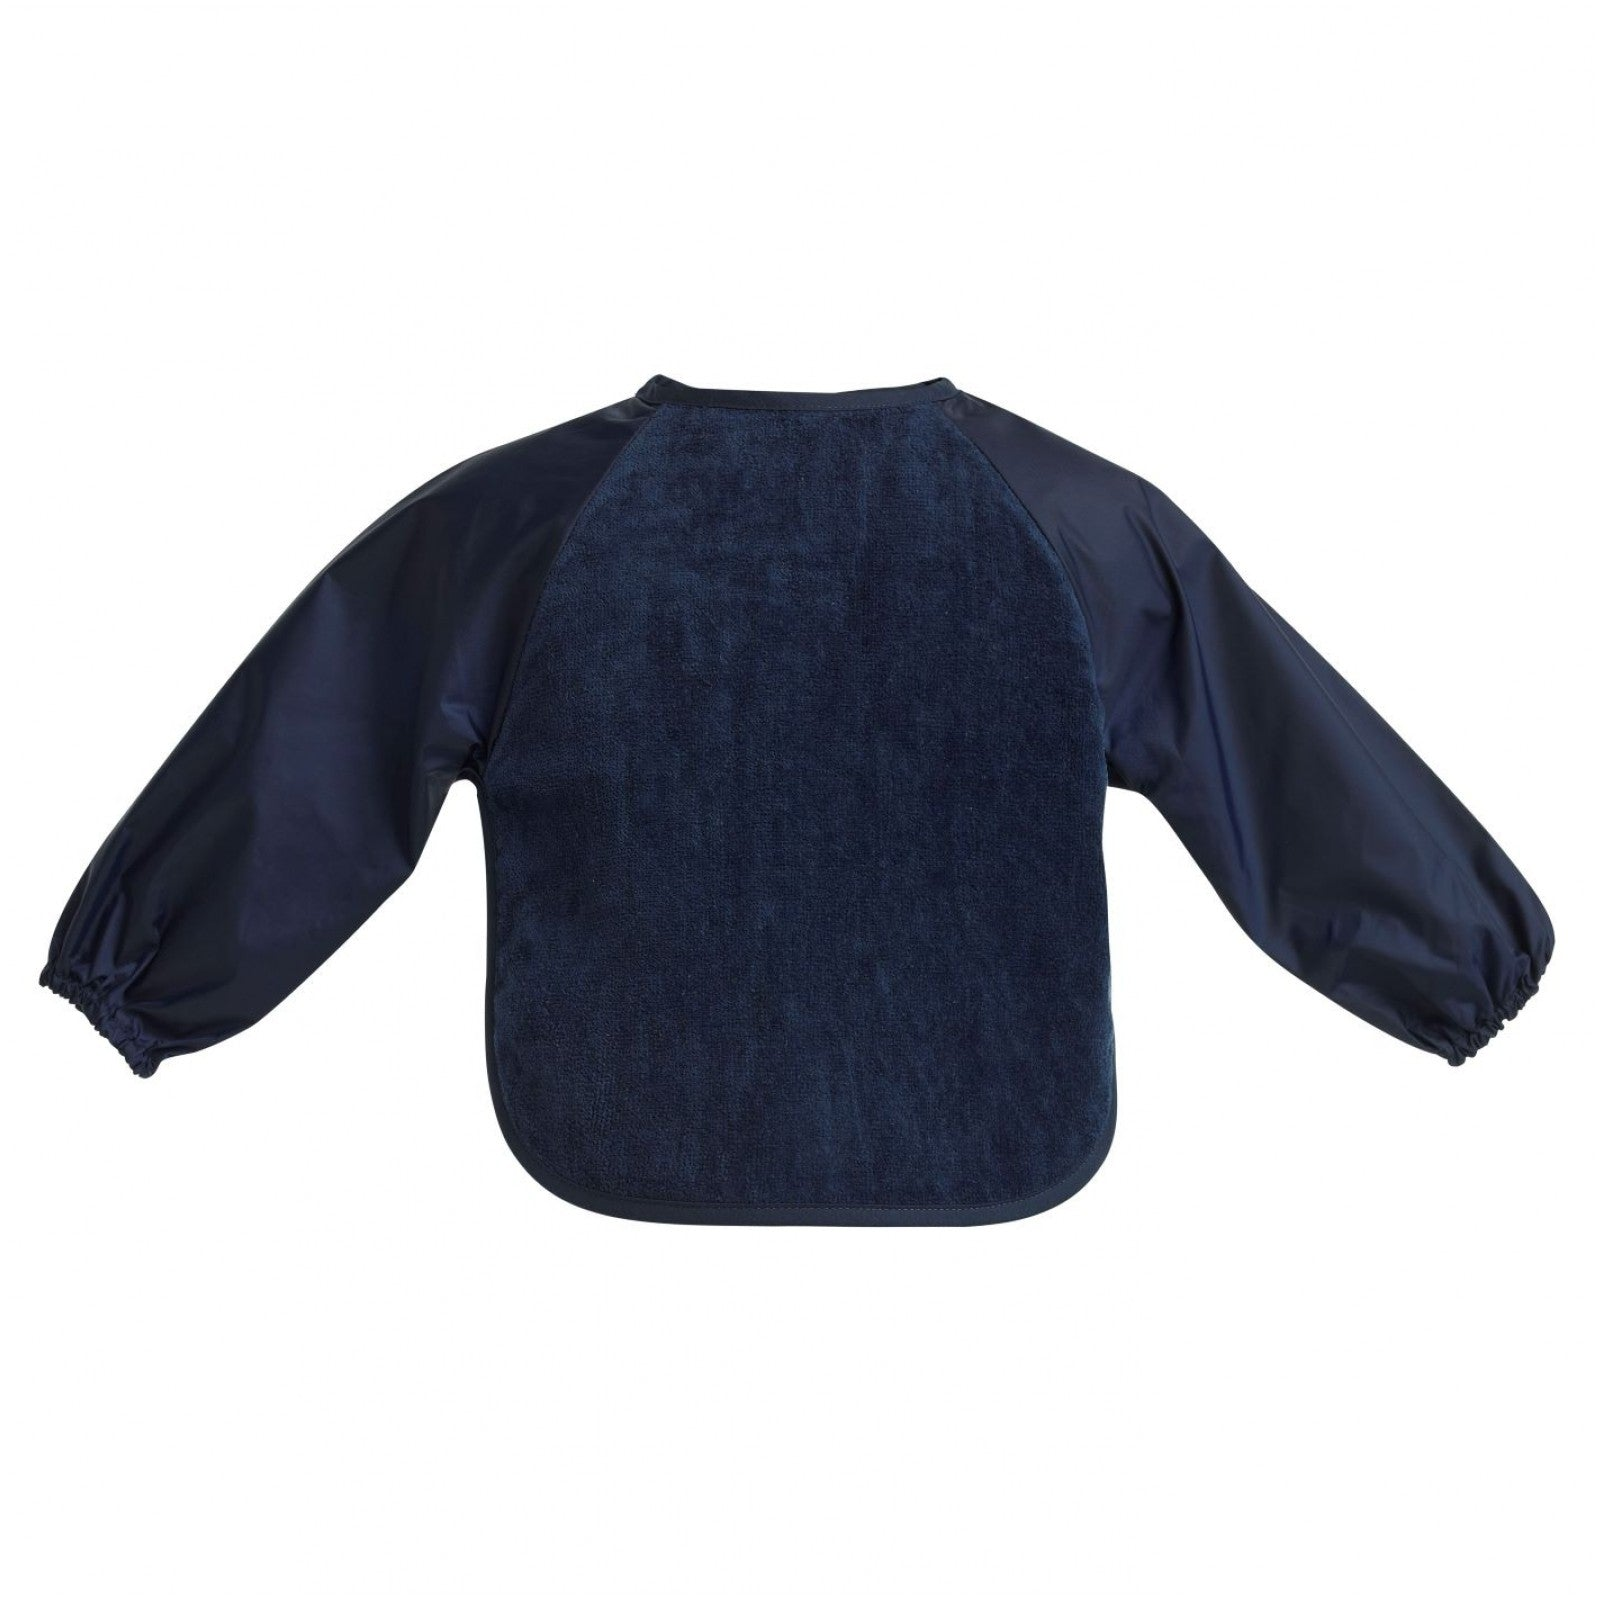 Sleeved Wonderbib Navy Blue Worn